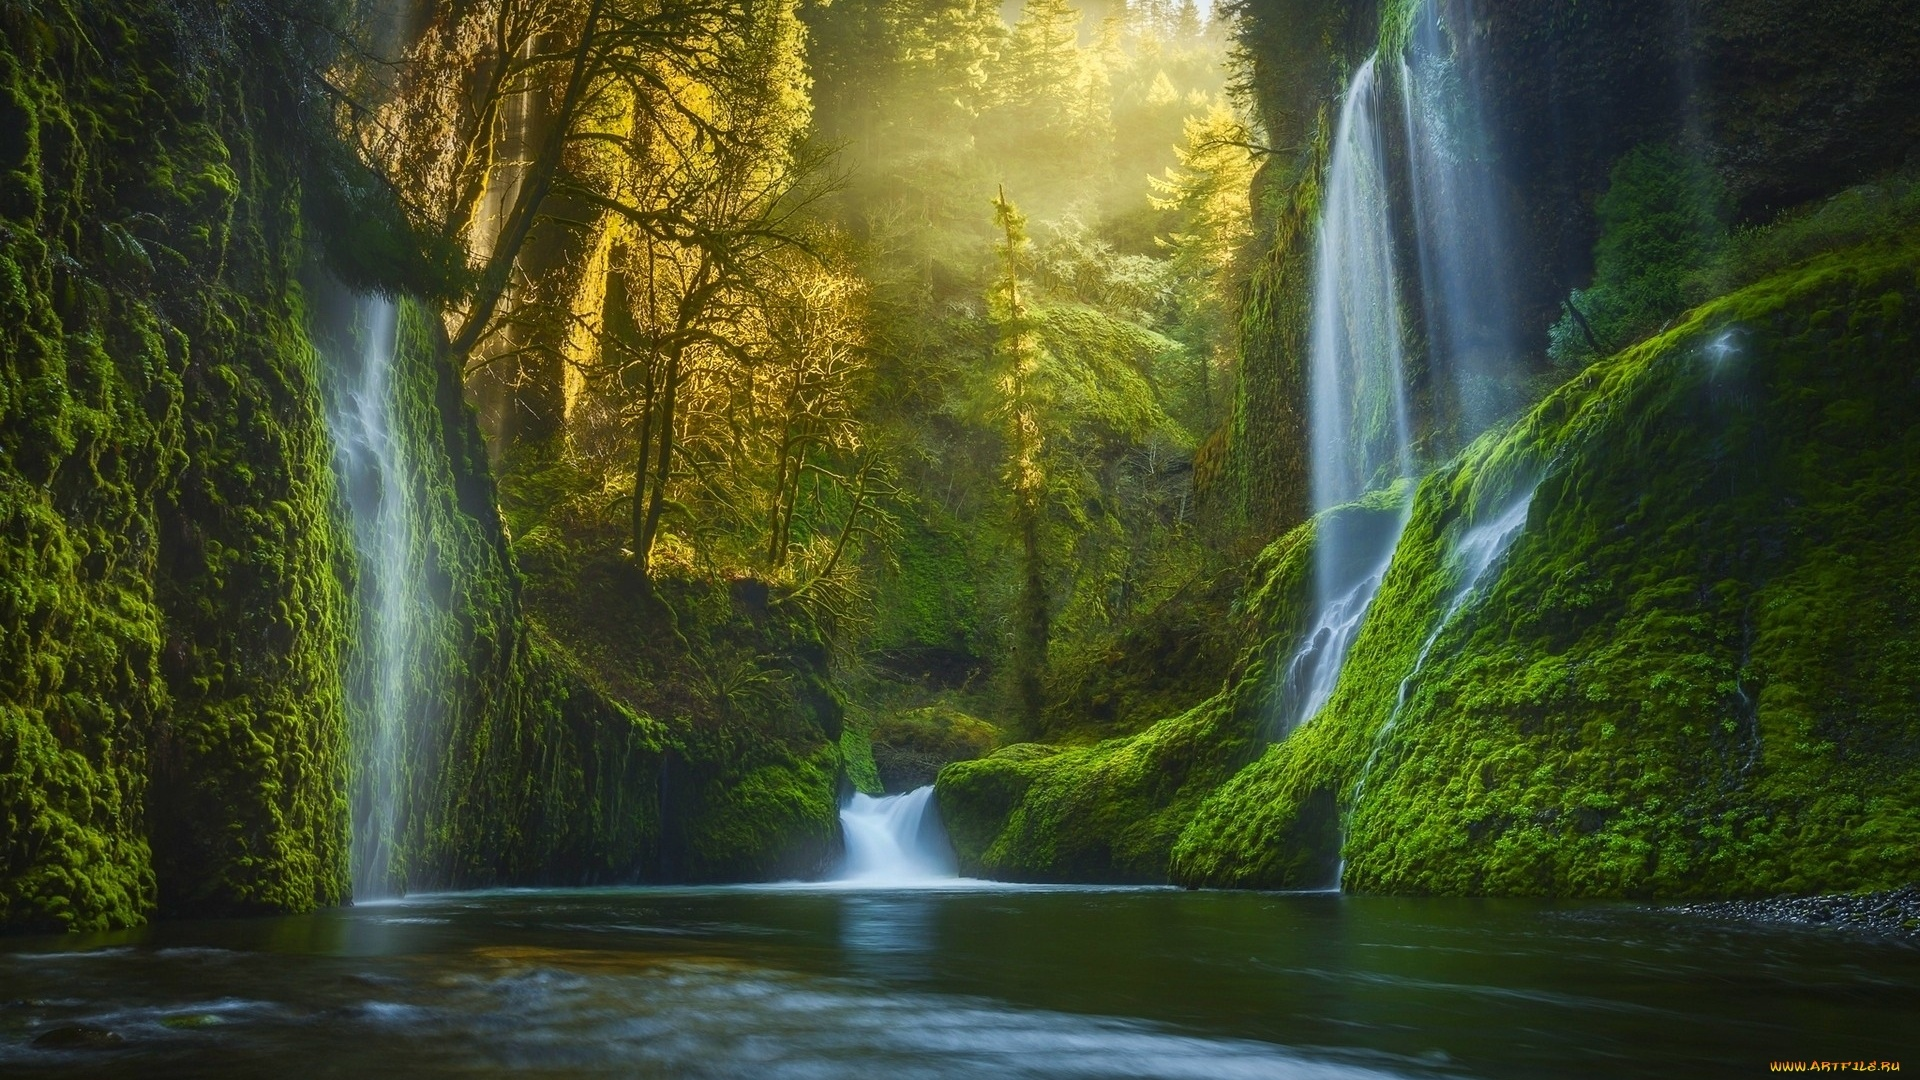 Forest Waterfall wallpaper photo hd